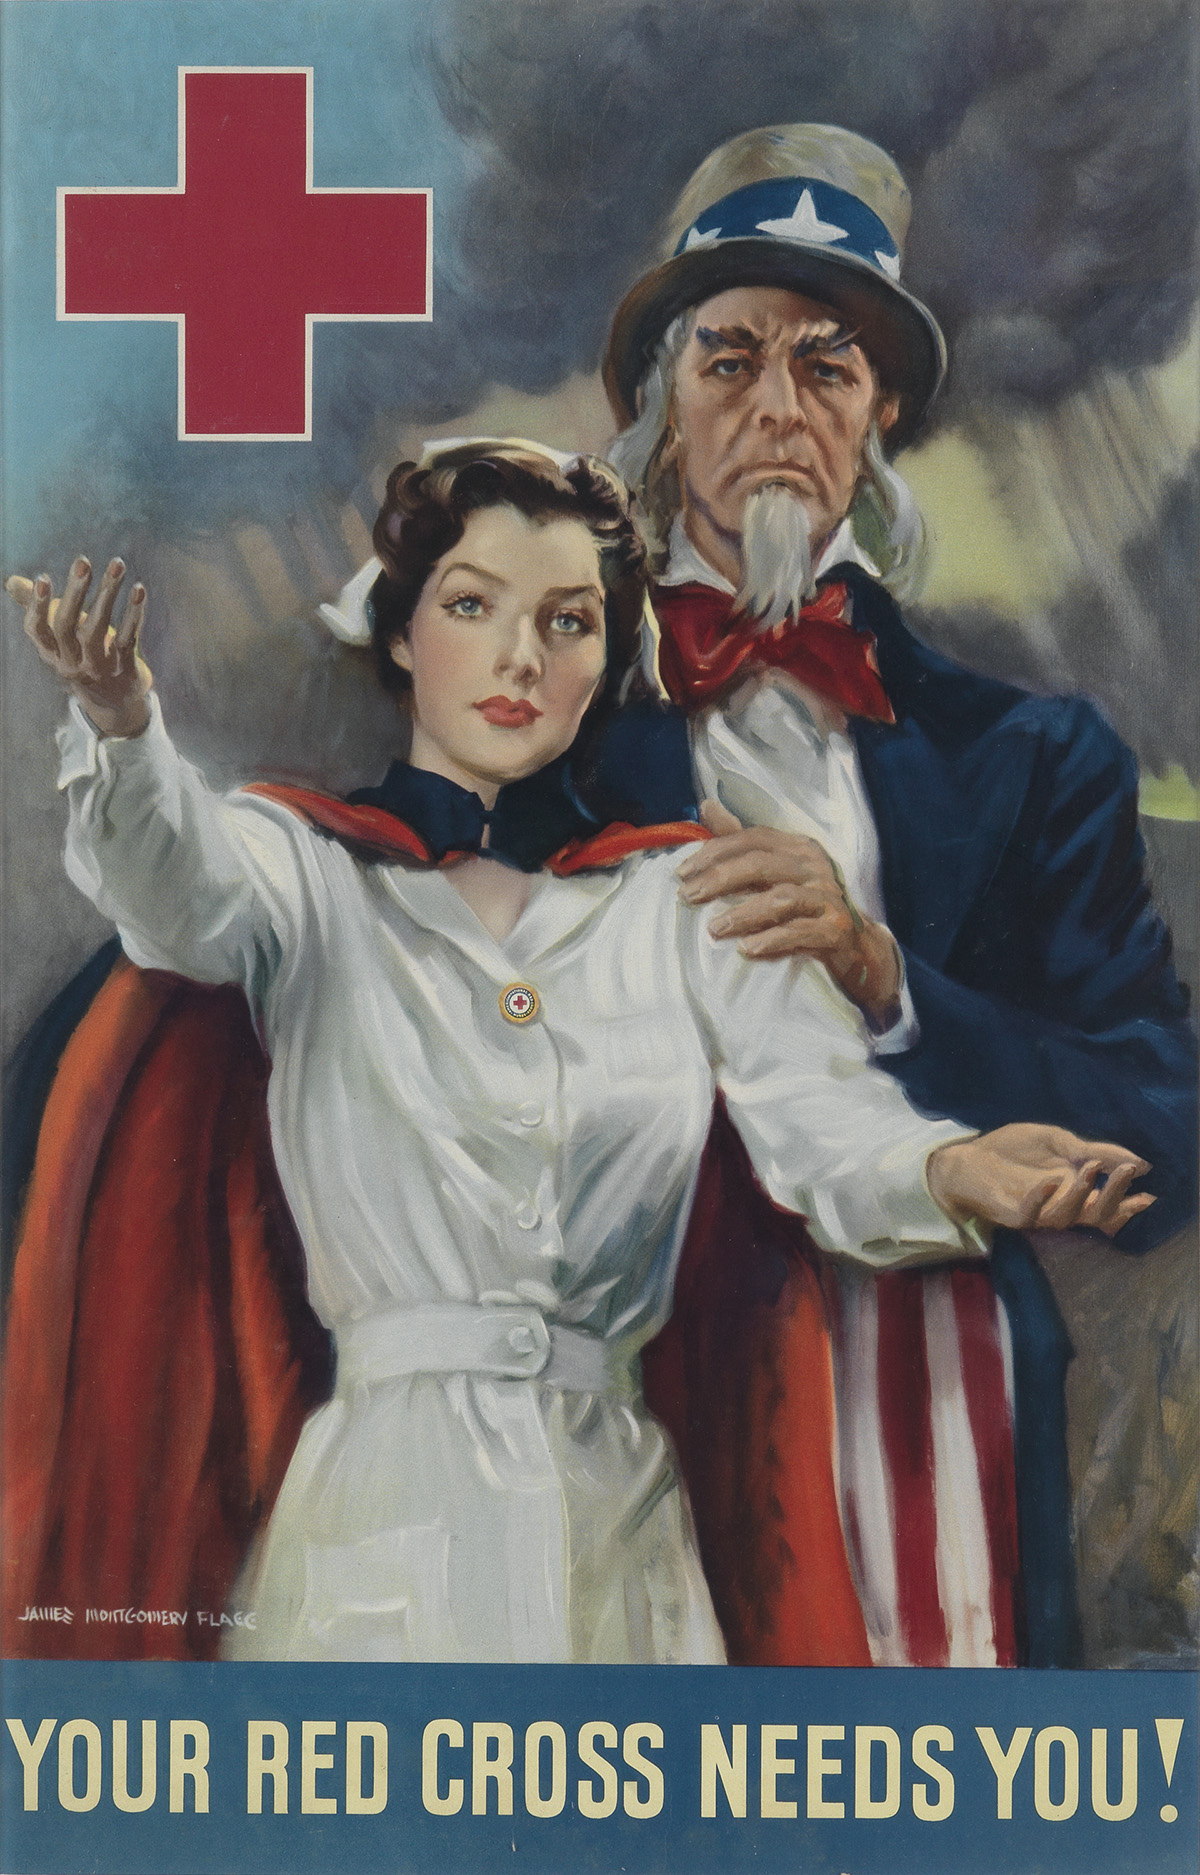 JAMES-MONTGOMERY-FLAGG-(1870-1960)-YOUR-RED-CROSS-NEEDS-YOU-